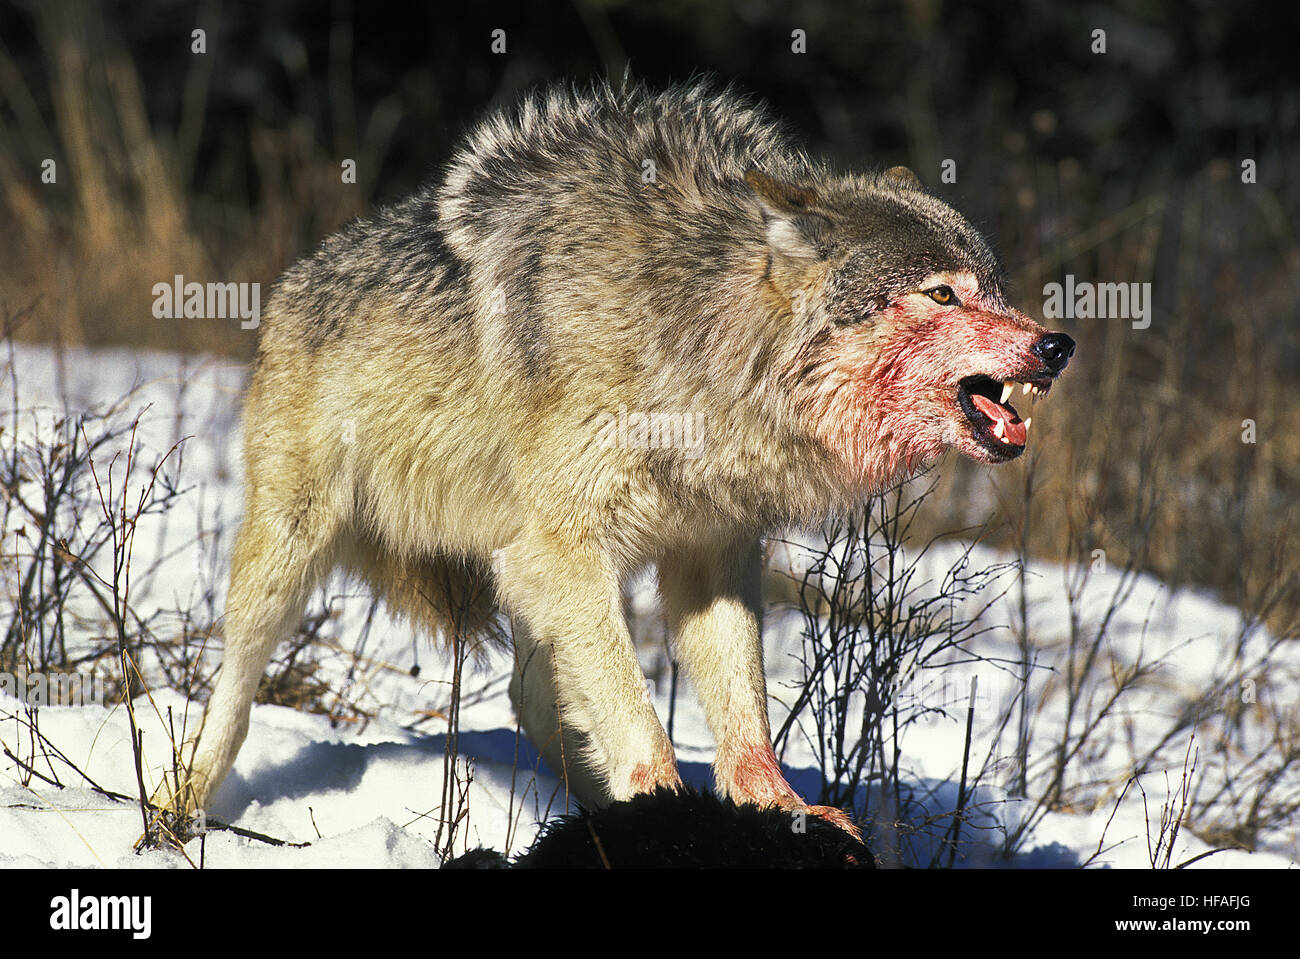 Image result for wolf with bloody mouth